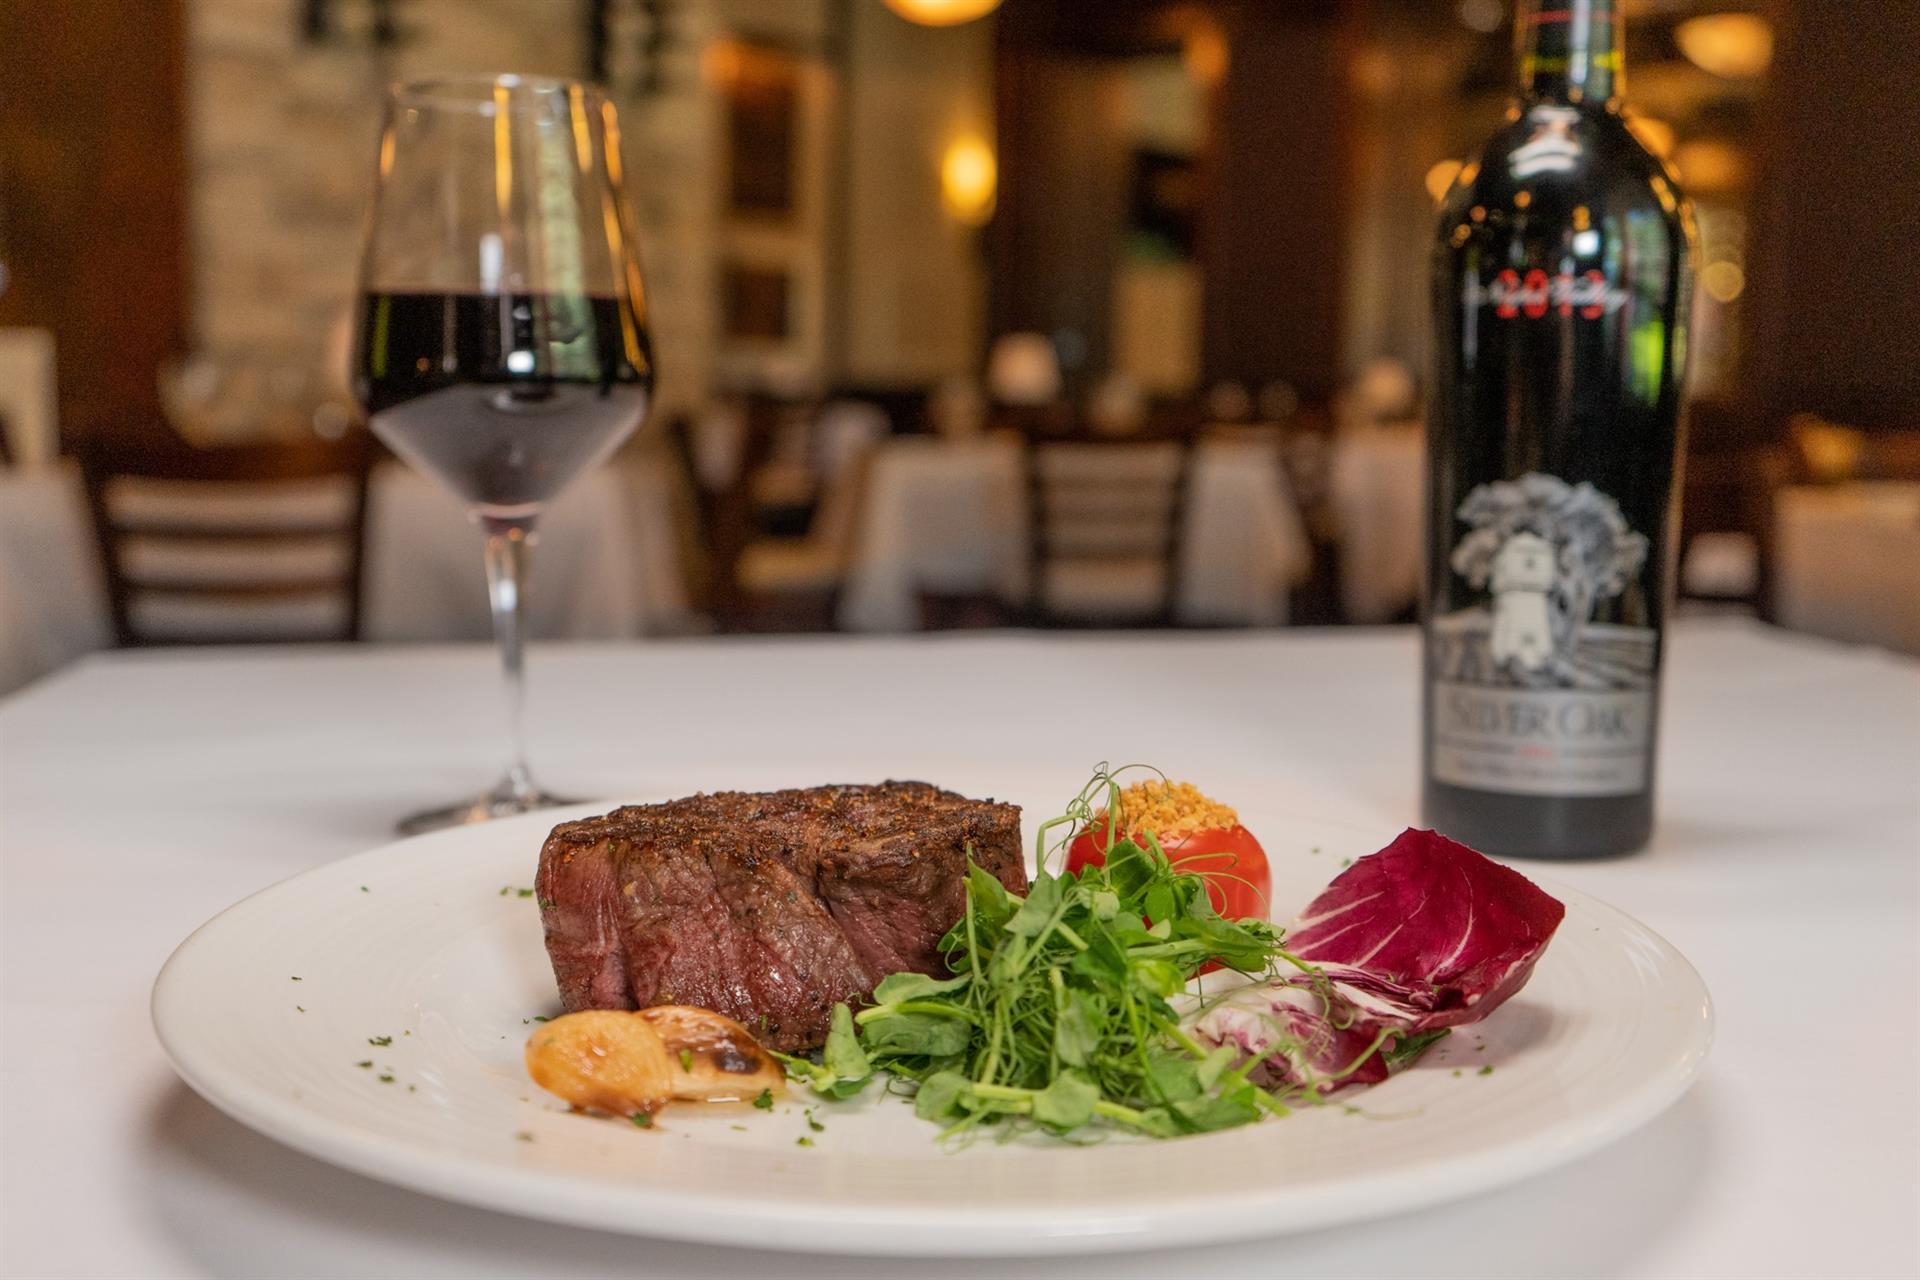 8 ounce Petit Filet Mignon with small salad and a glass of red wine on a table.